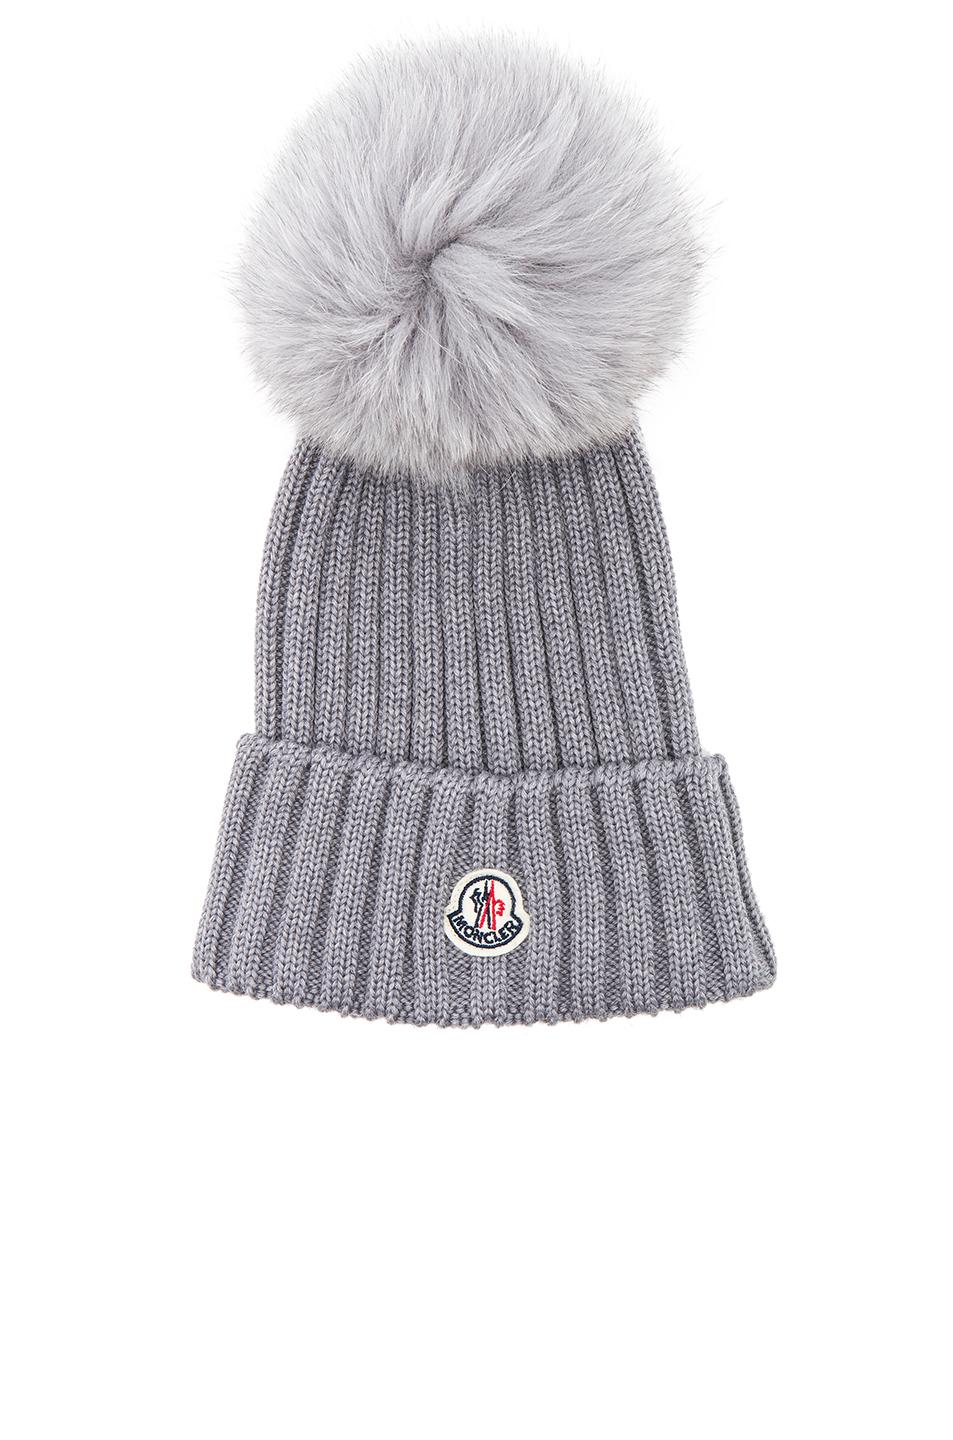 a4c17a9a84a Moncler Wool Knit Beanie Hat W  Fox Pompom In Grey